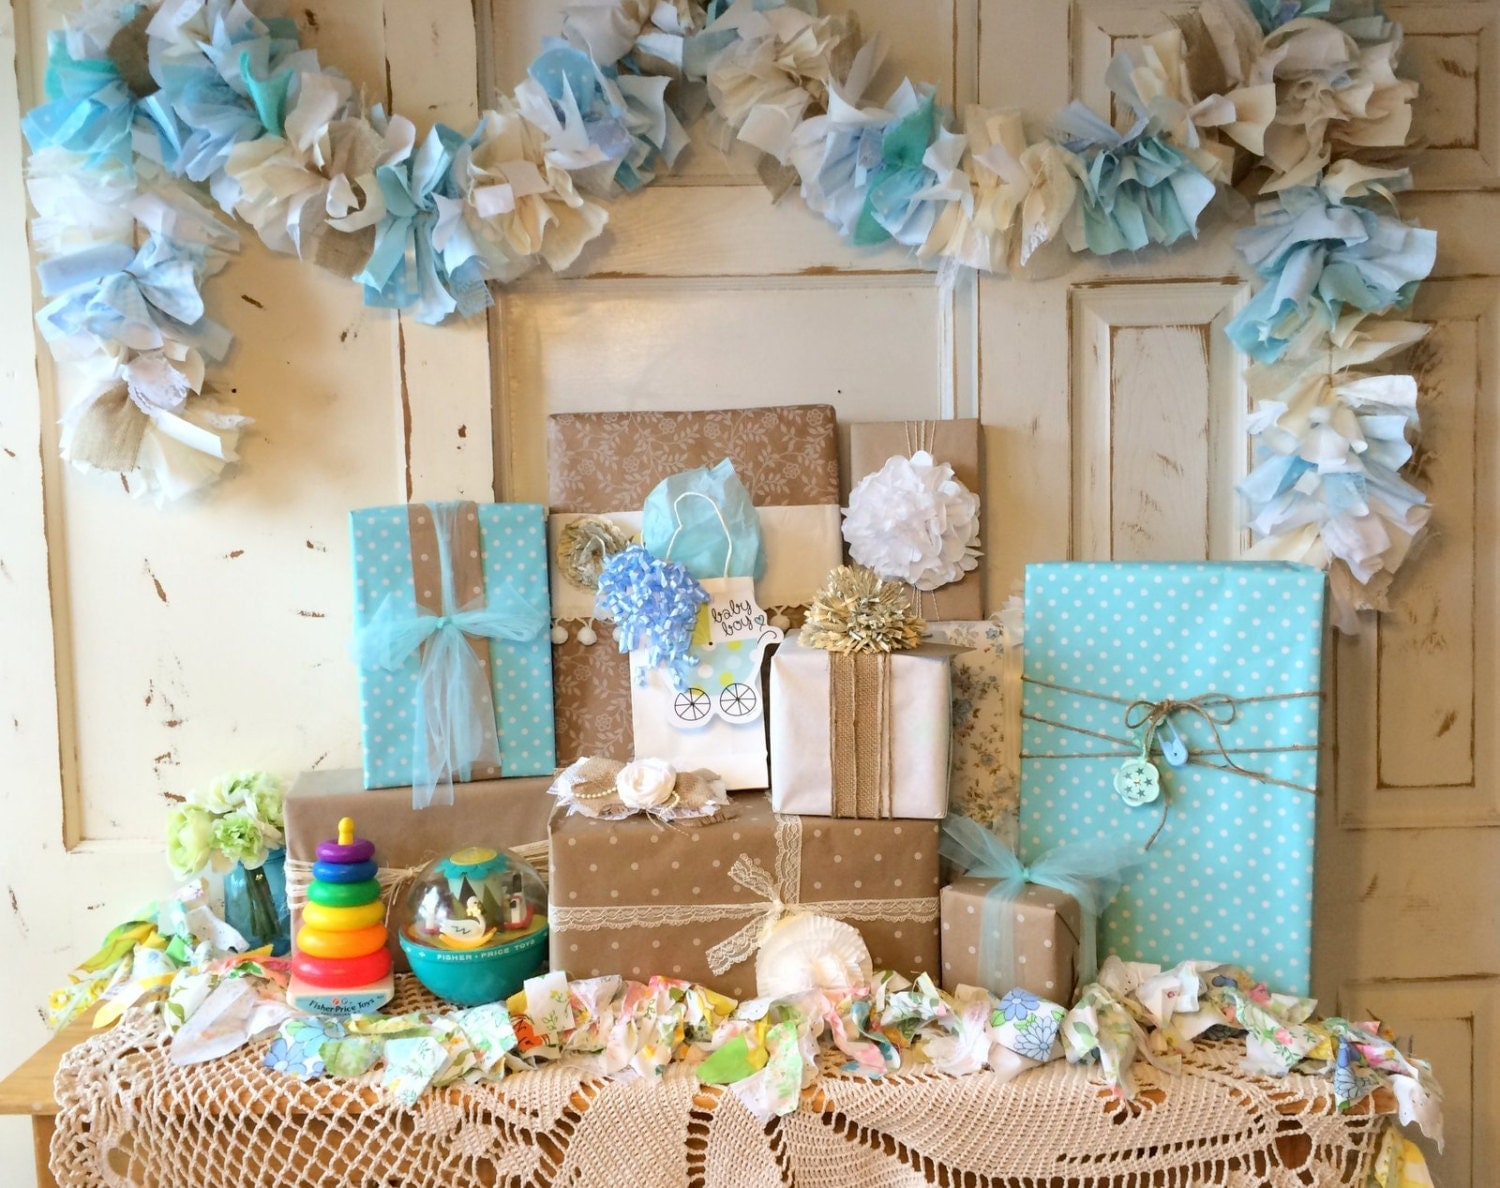 Baby boy burlap shower party decoration 6 10 foot fabric for Baby themed fabric